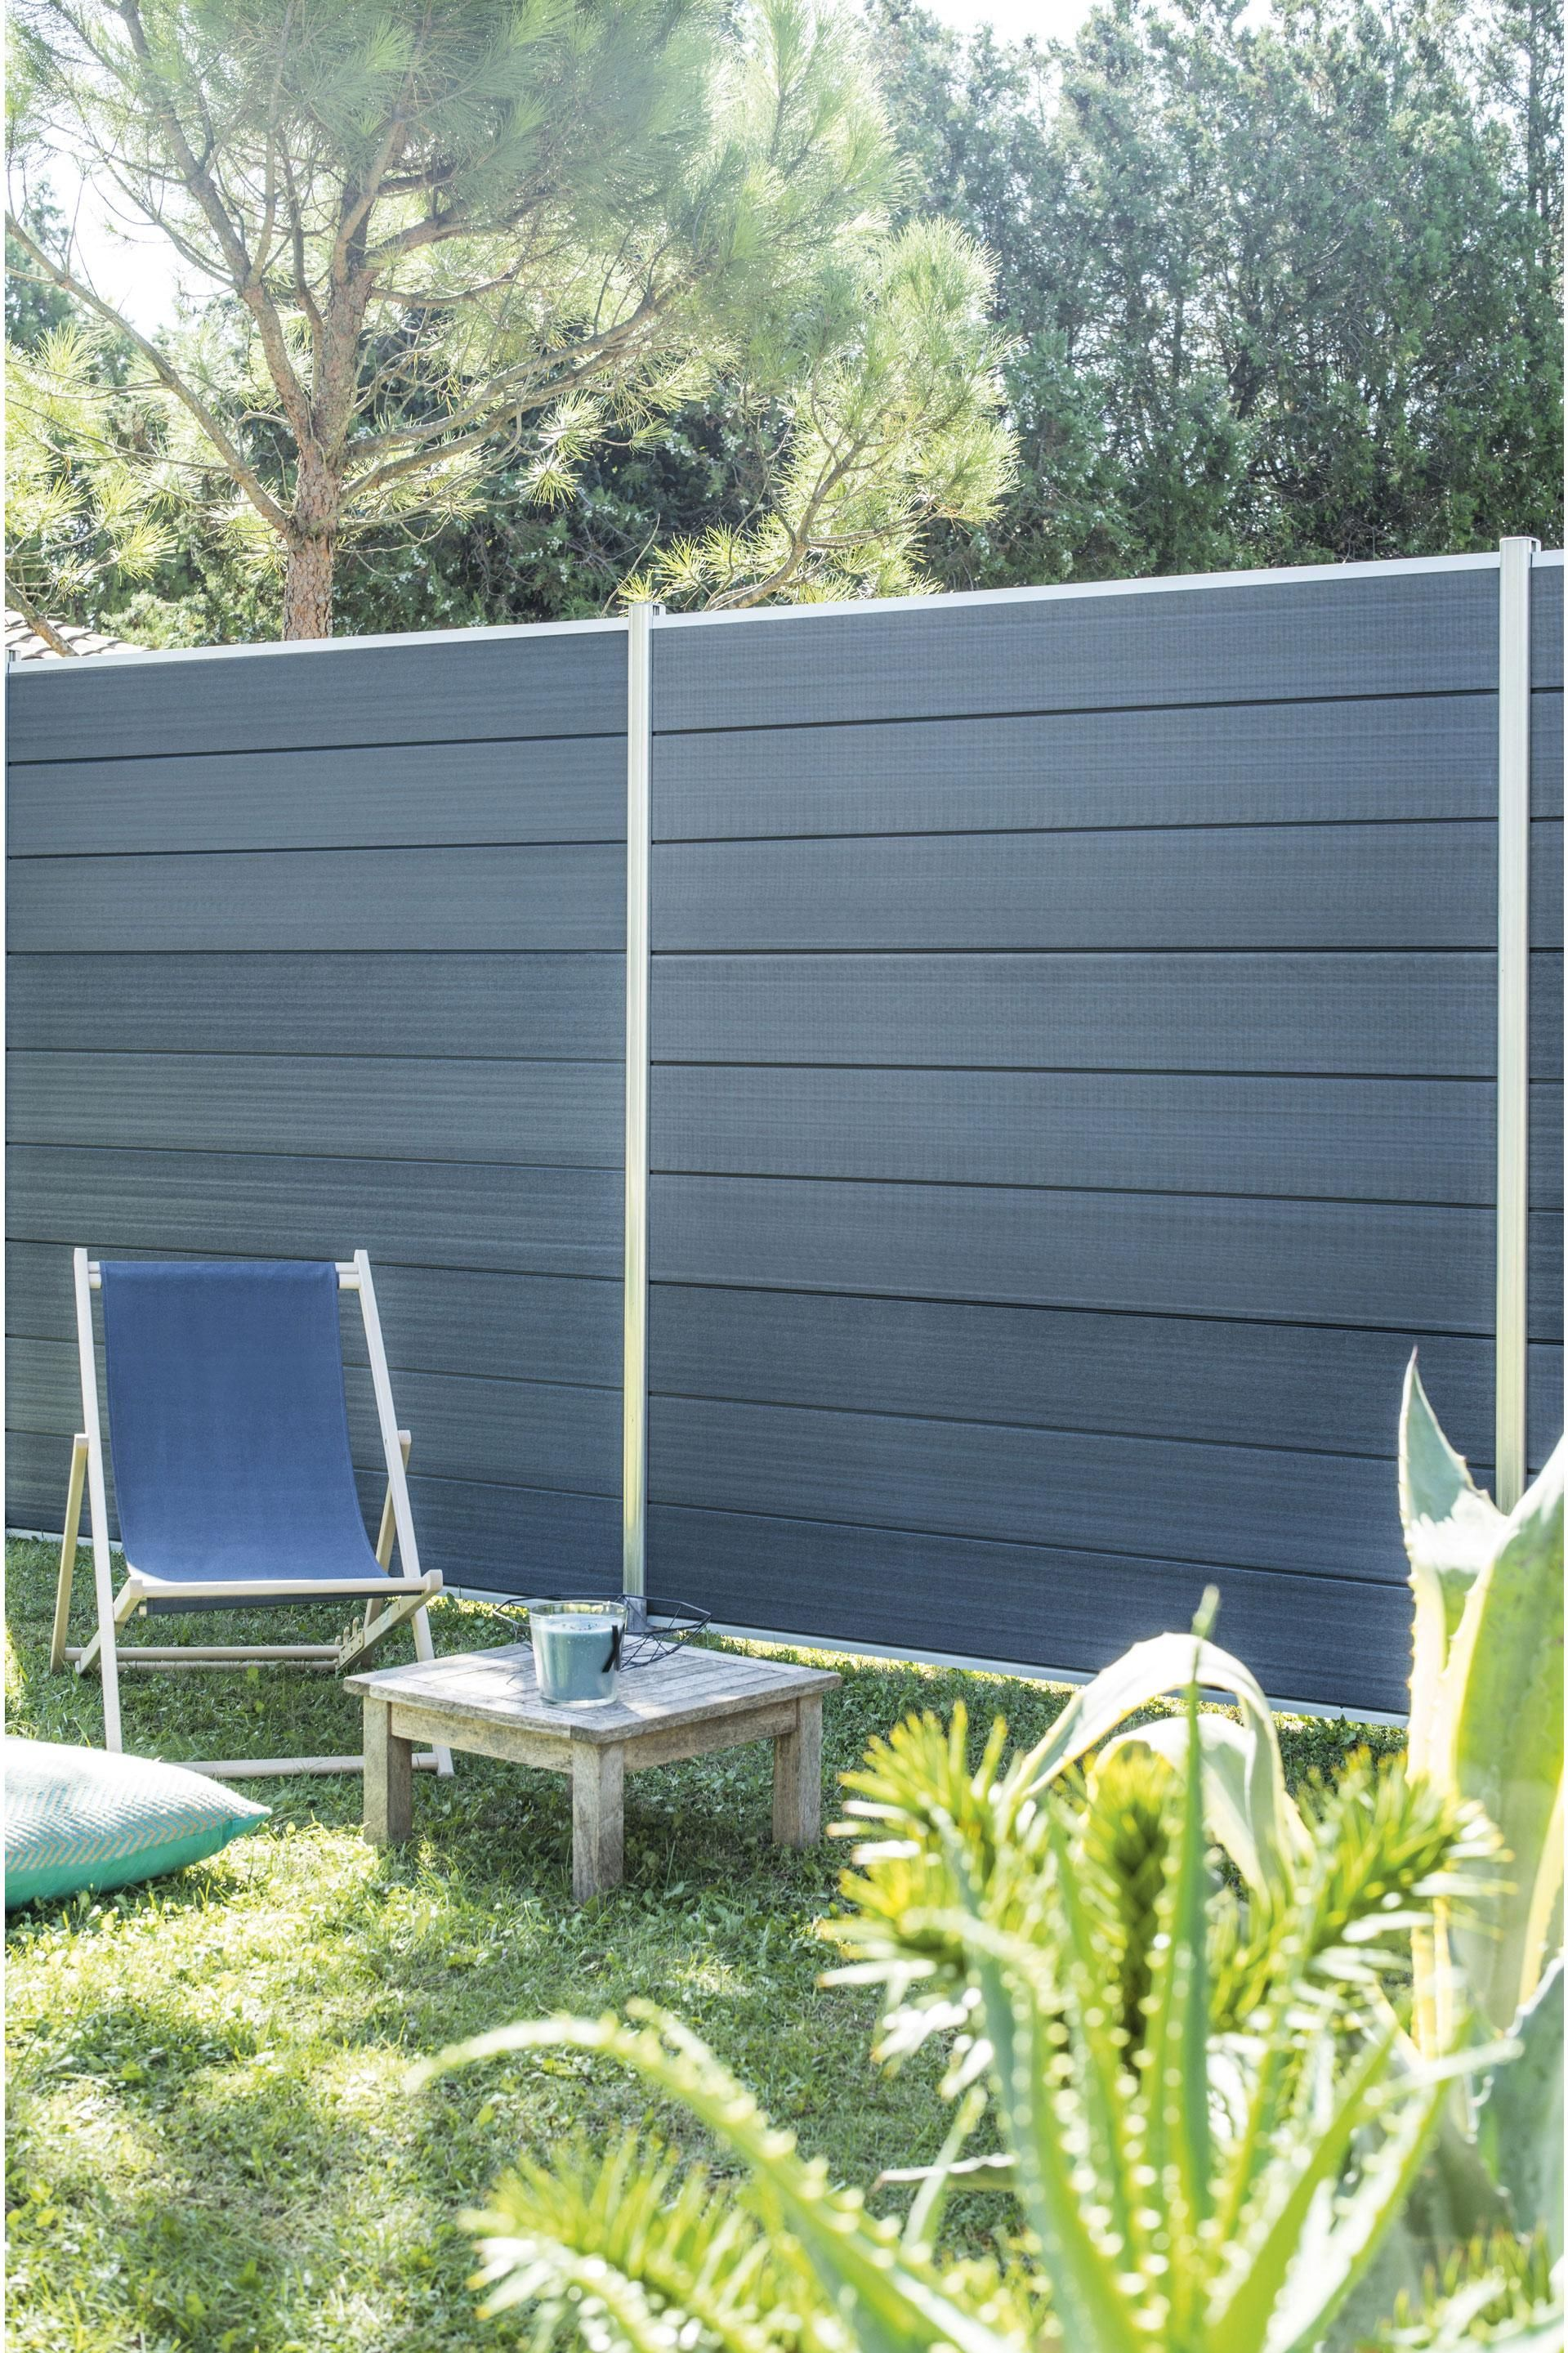 Cloture A Composer Plastique Marly Gris Products En 2019 Cloture Jardin Plastique Et Gris